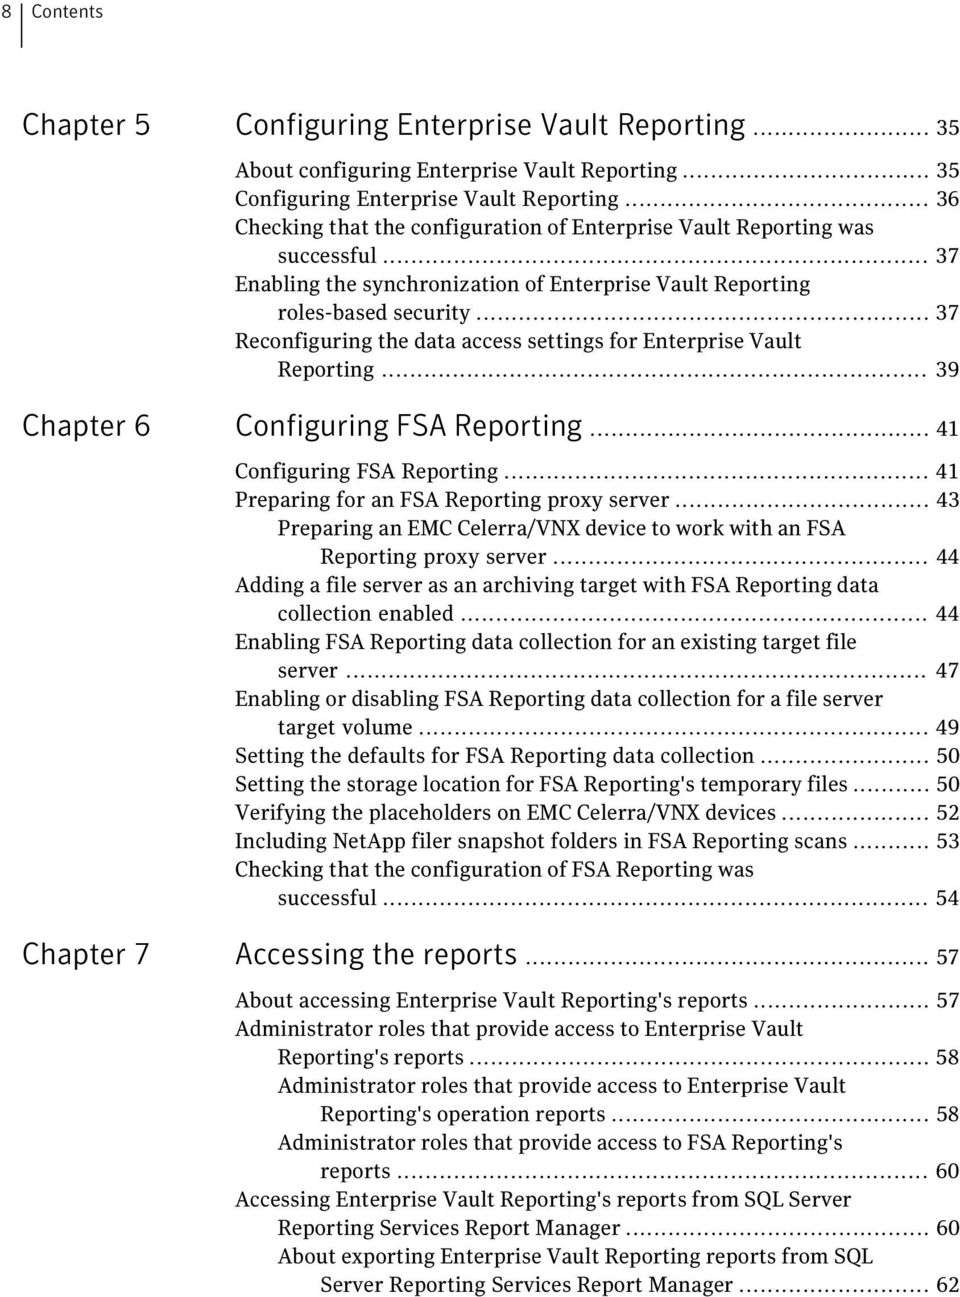 .. 37 Reconfiguring the data access settings for Enterprise Vault Reporting... 39 Chapter 6 Configuring FSA Reporting... 41 Configuring FSA Reporting... 41 Preparing for an FSA Reporting proxy server.